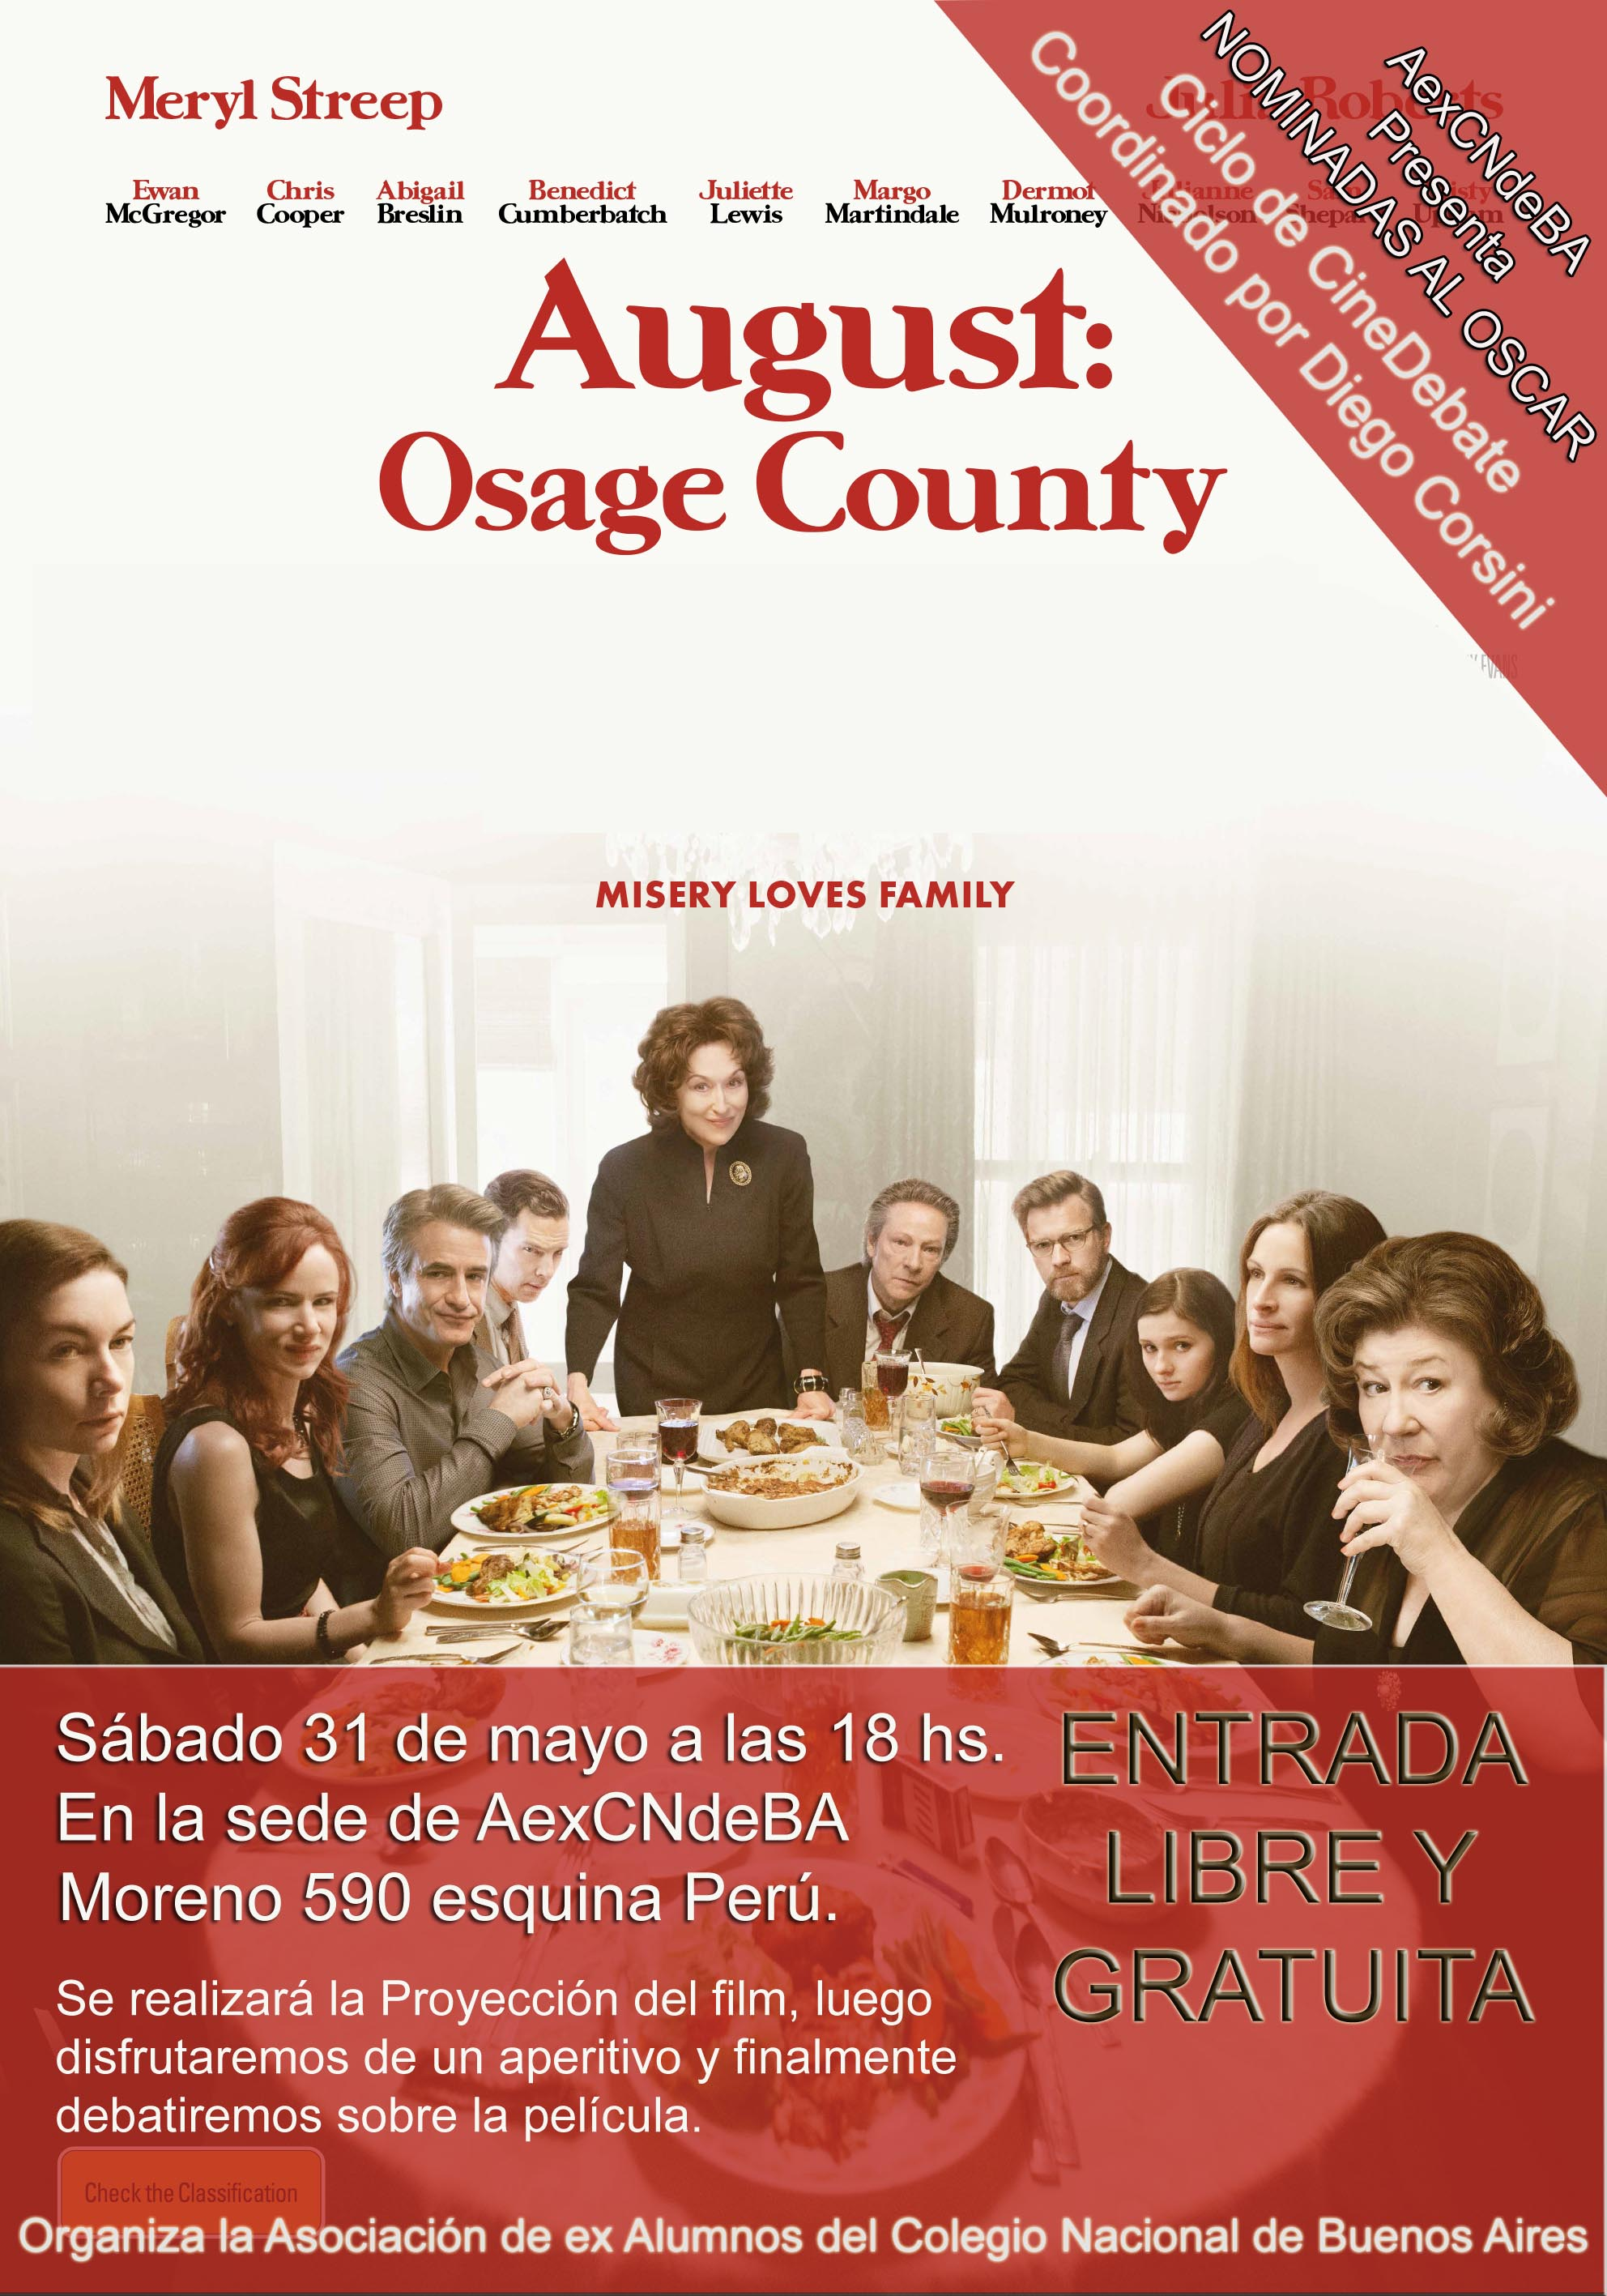 August-Osage-County-New-Poster copy